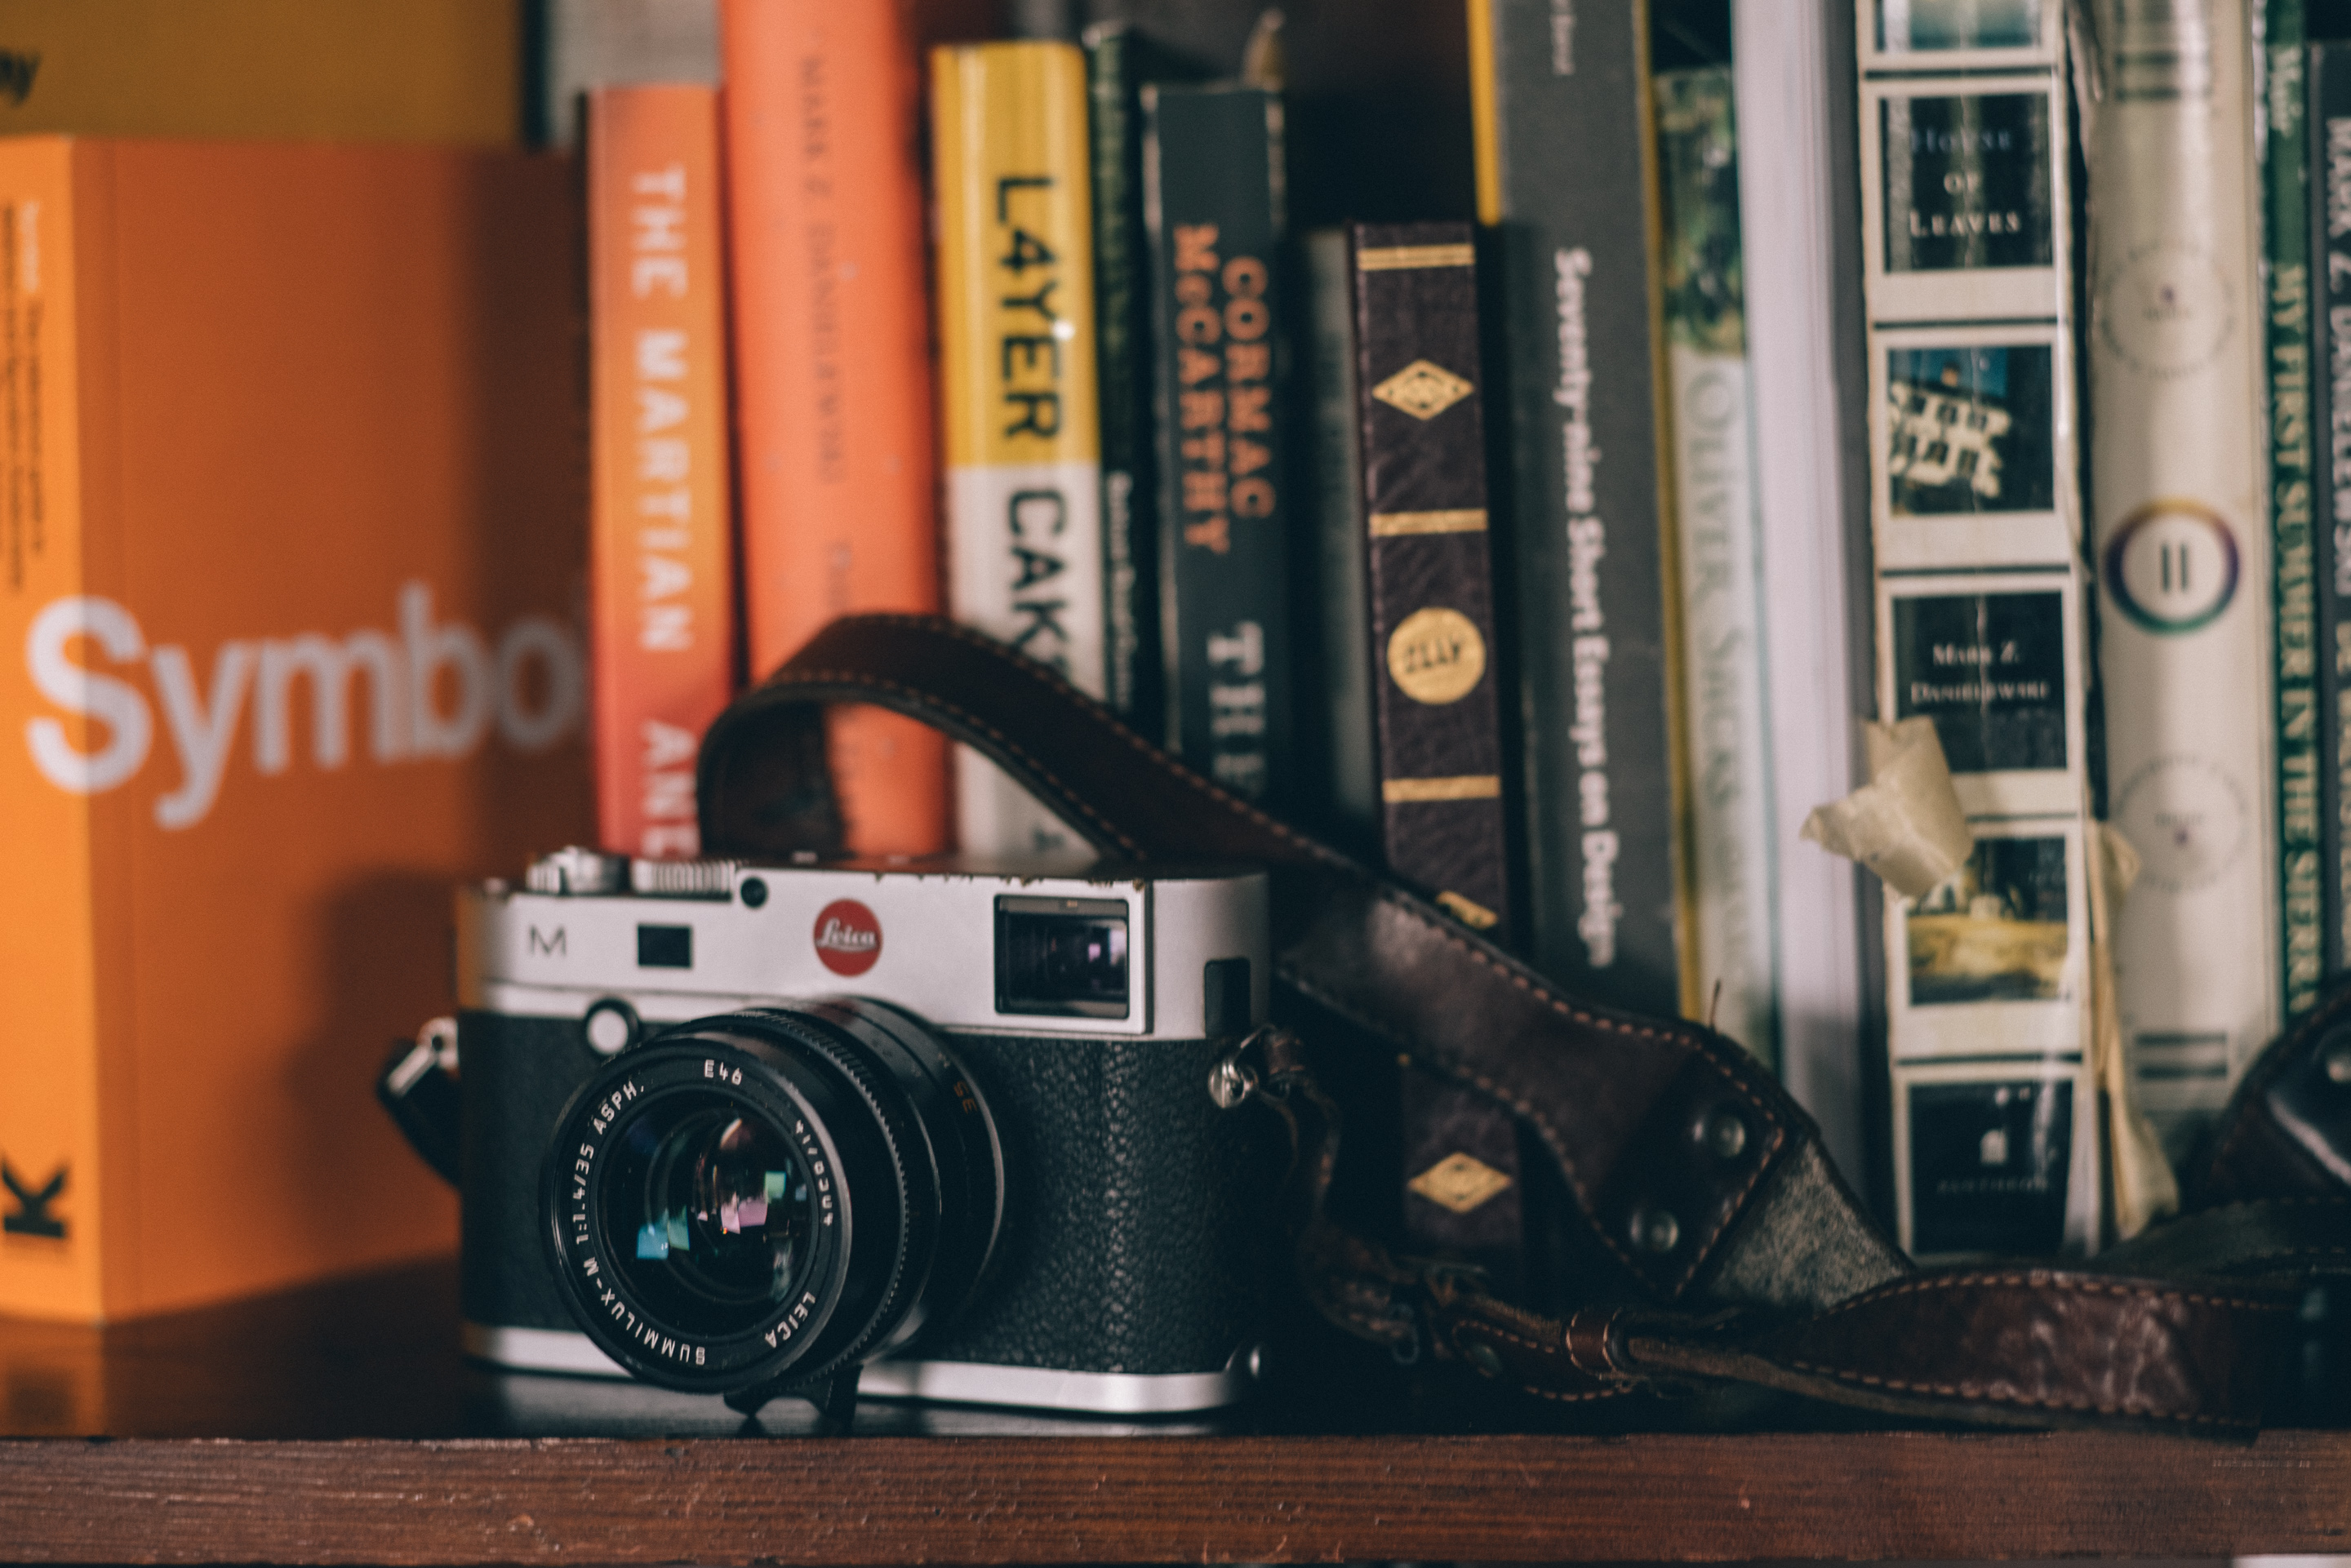 Leica M on bookshelf